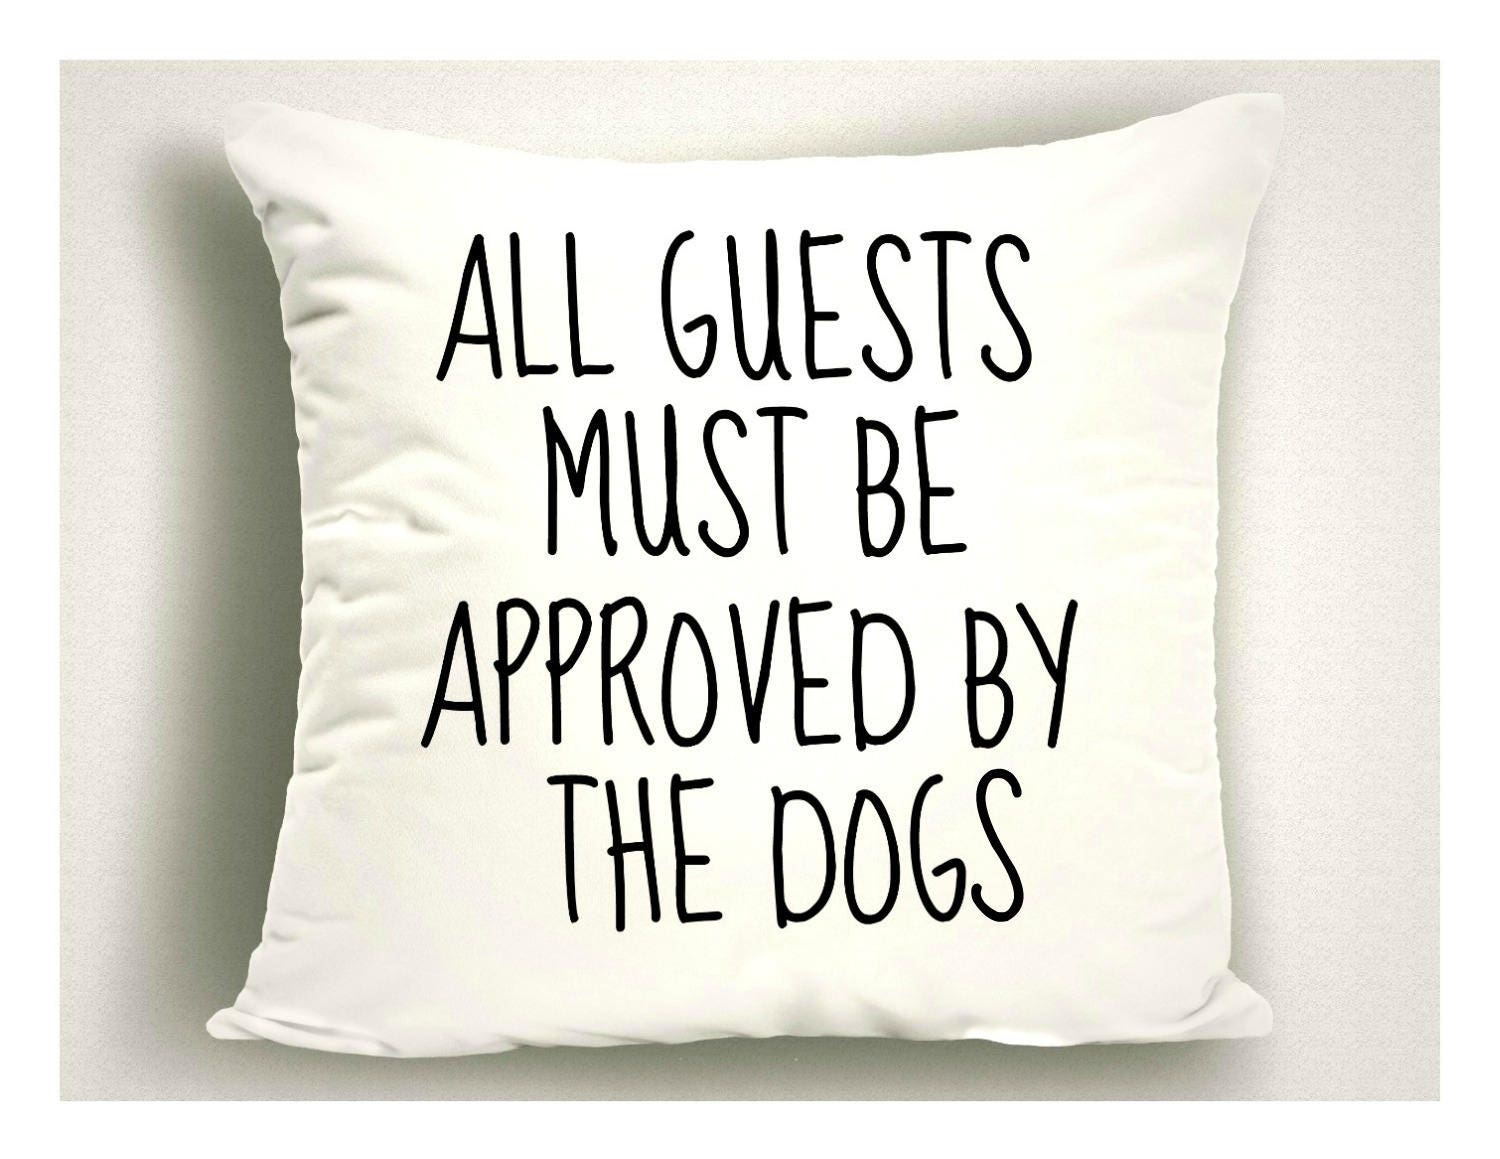 Throw Pillows With Dog Sayings : All Guests Must Be Approved by The Dogs Throw Pillows, Large Pillow Covers With Dog Sayings ...